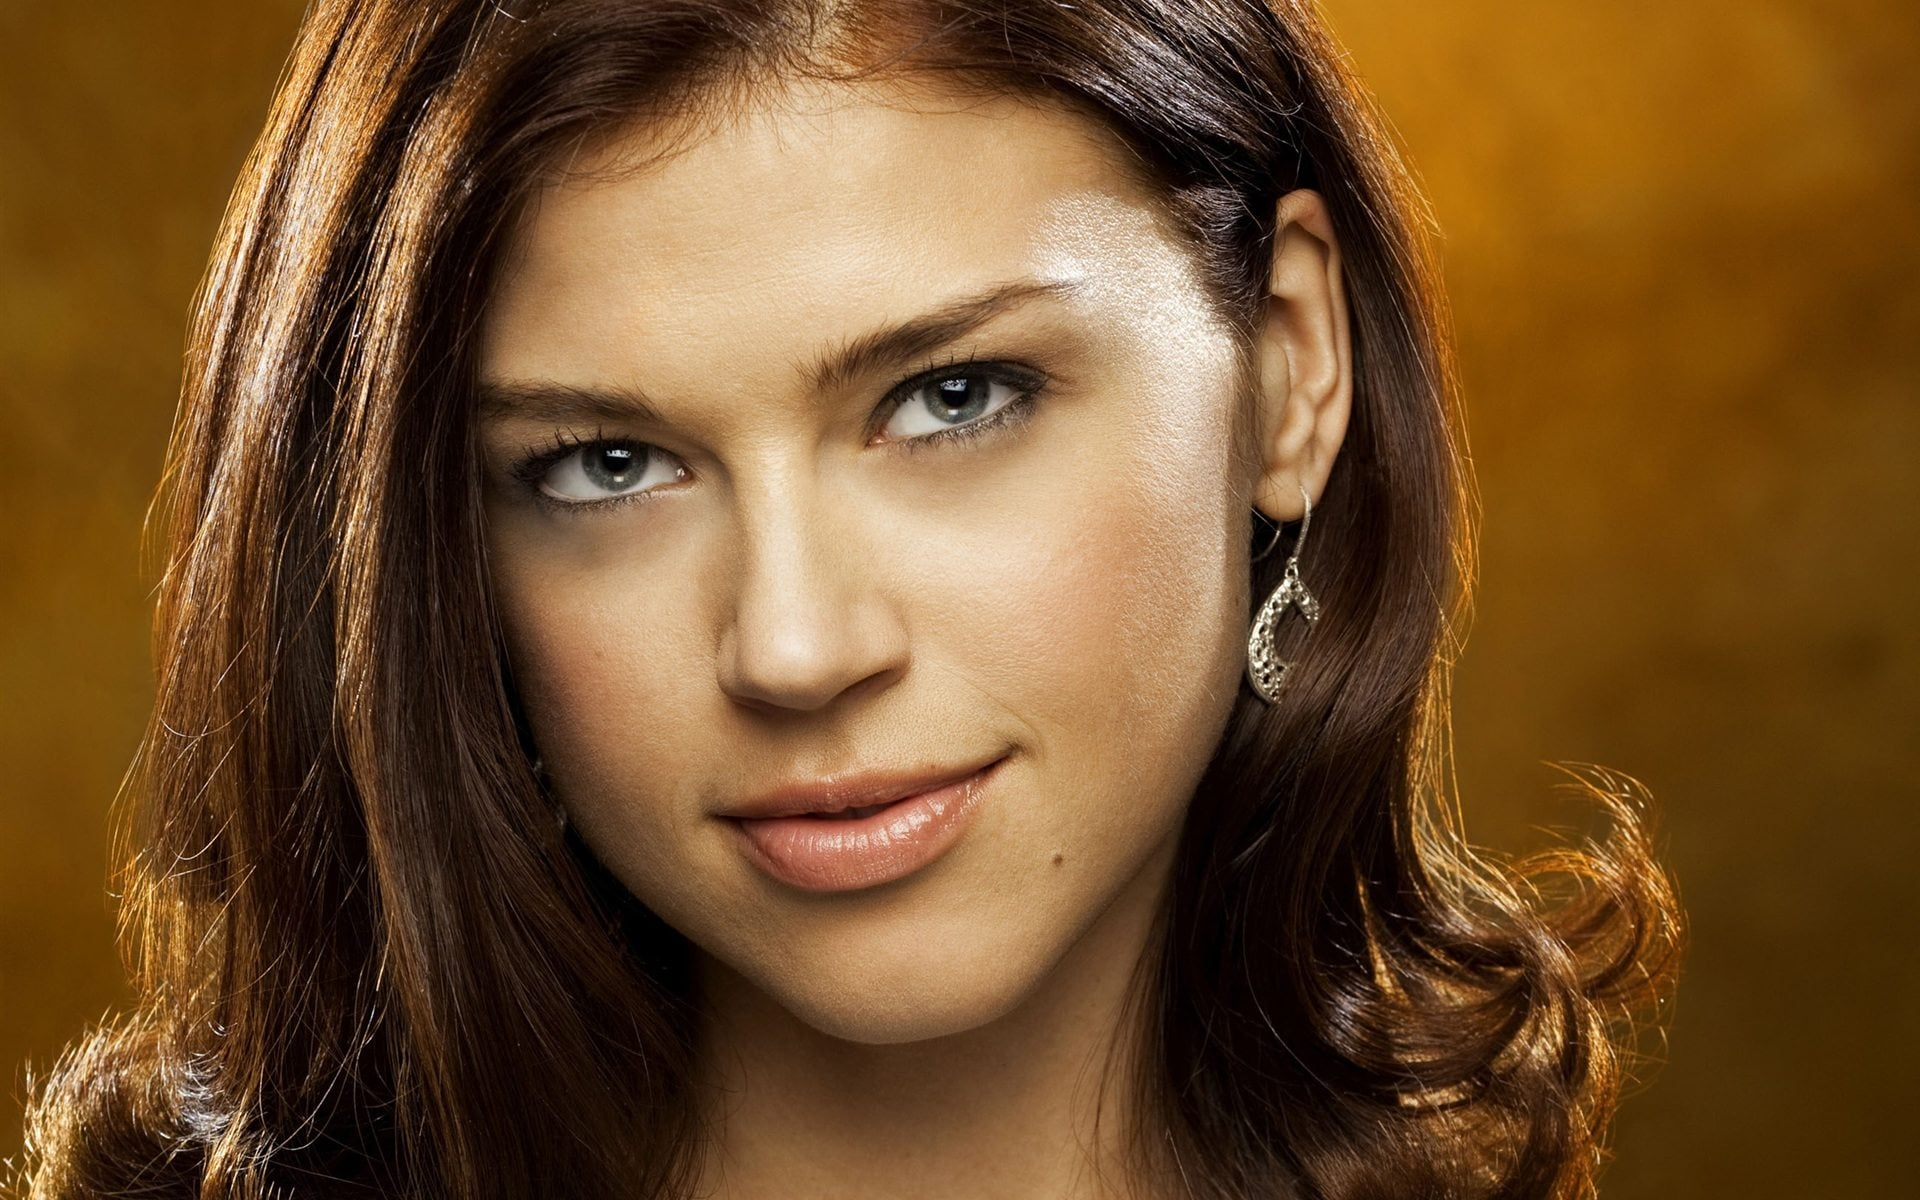 13+ Adrianne Palicki wallpapers HD Download